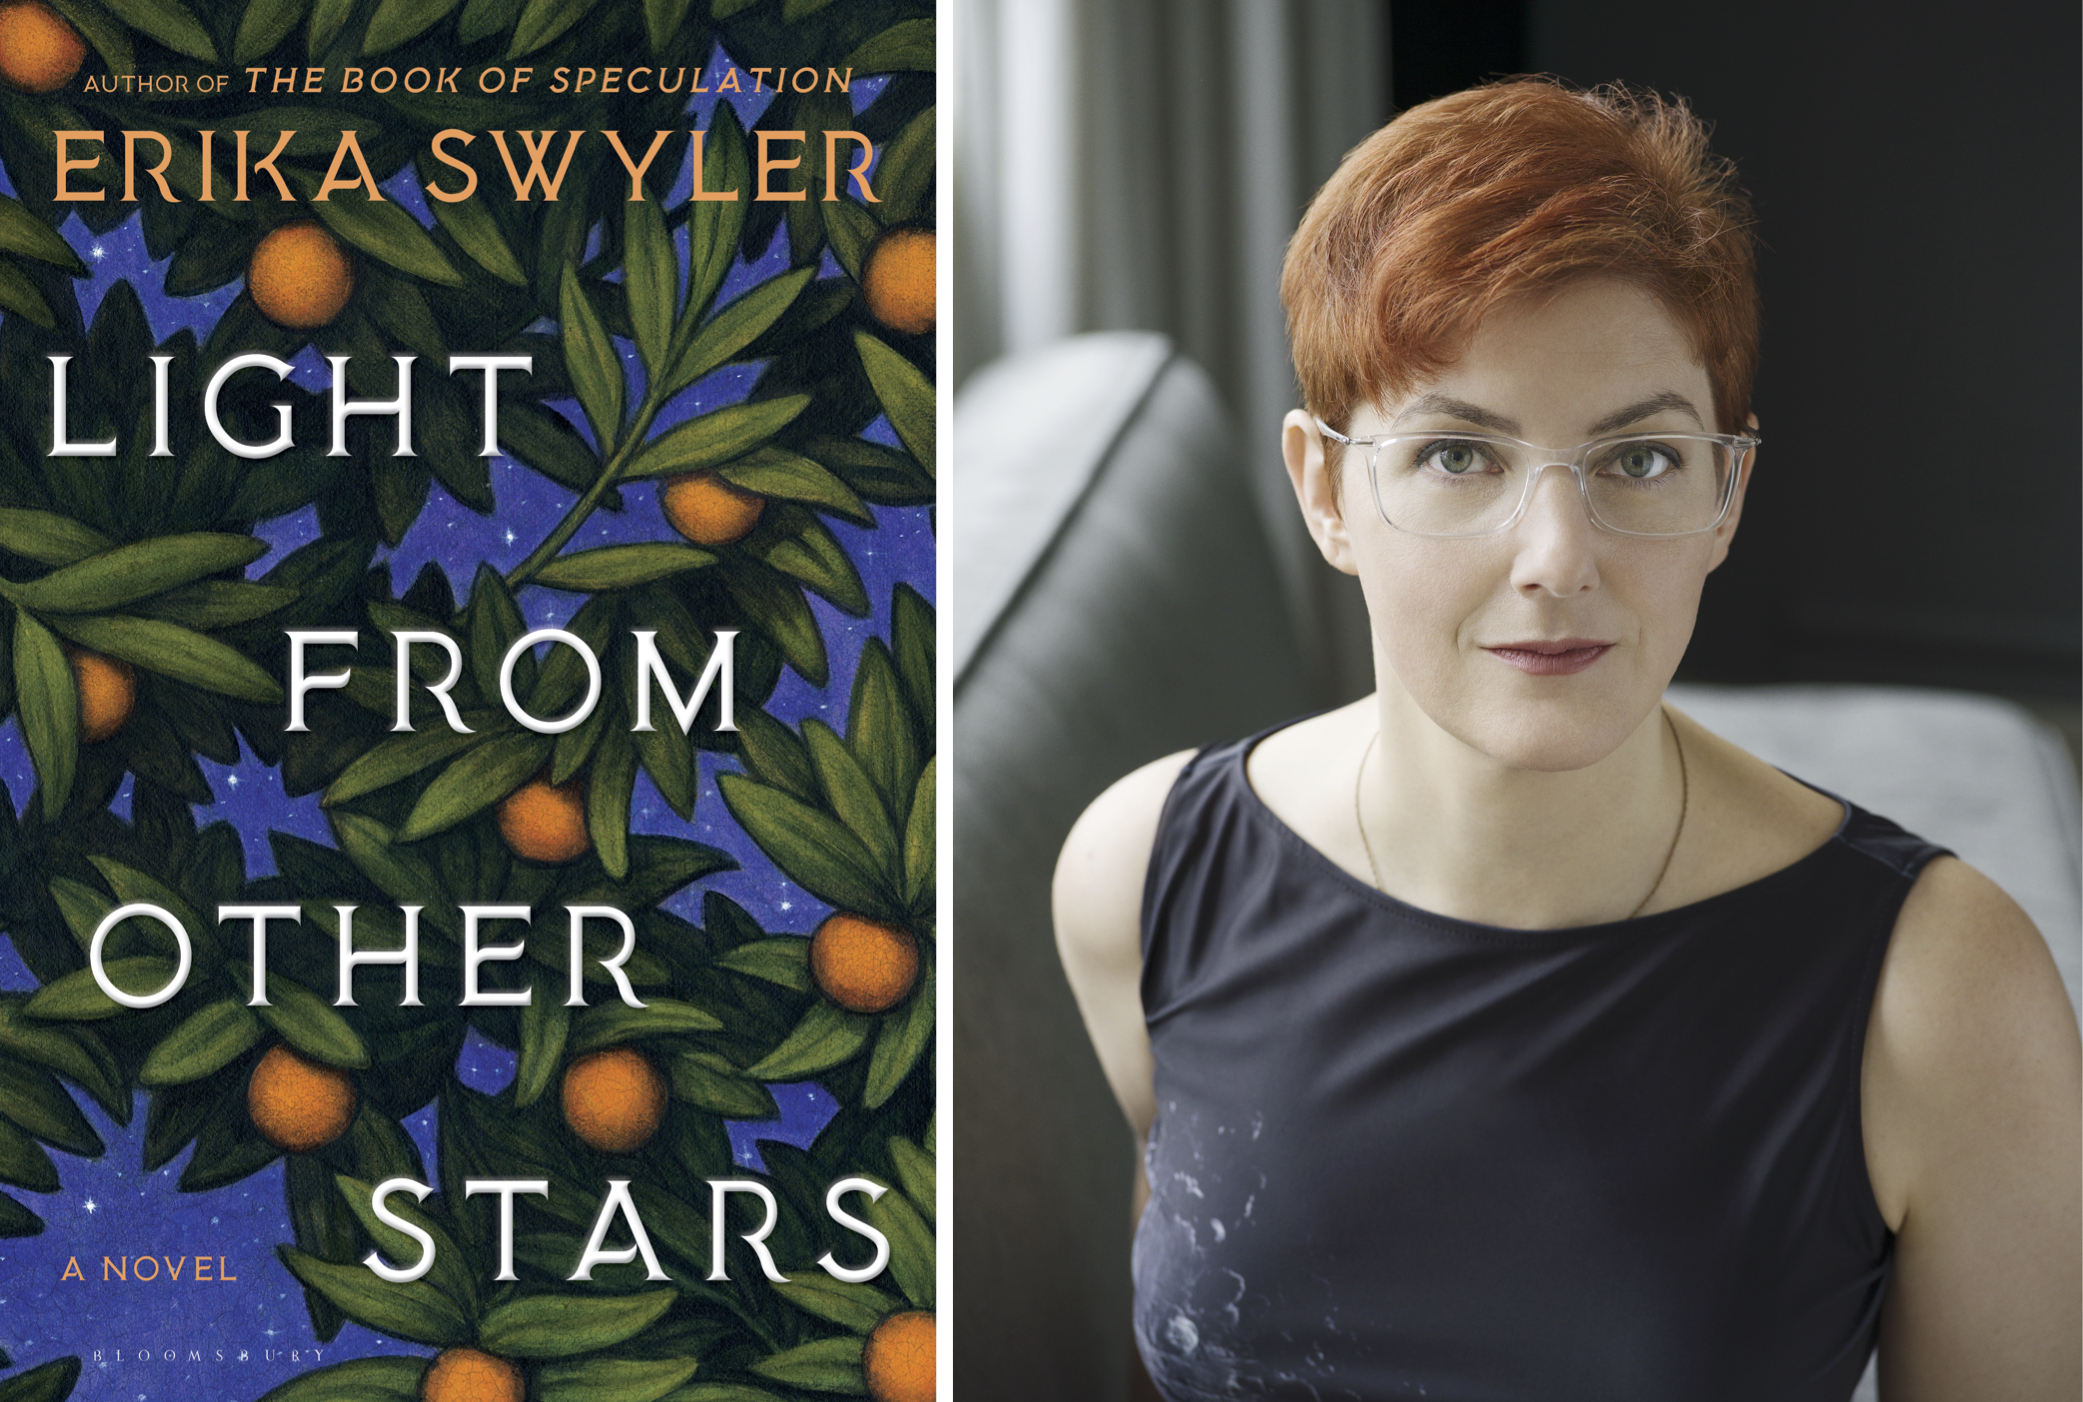 Erika Swyler LIGHT FROM OTHER STARS